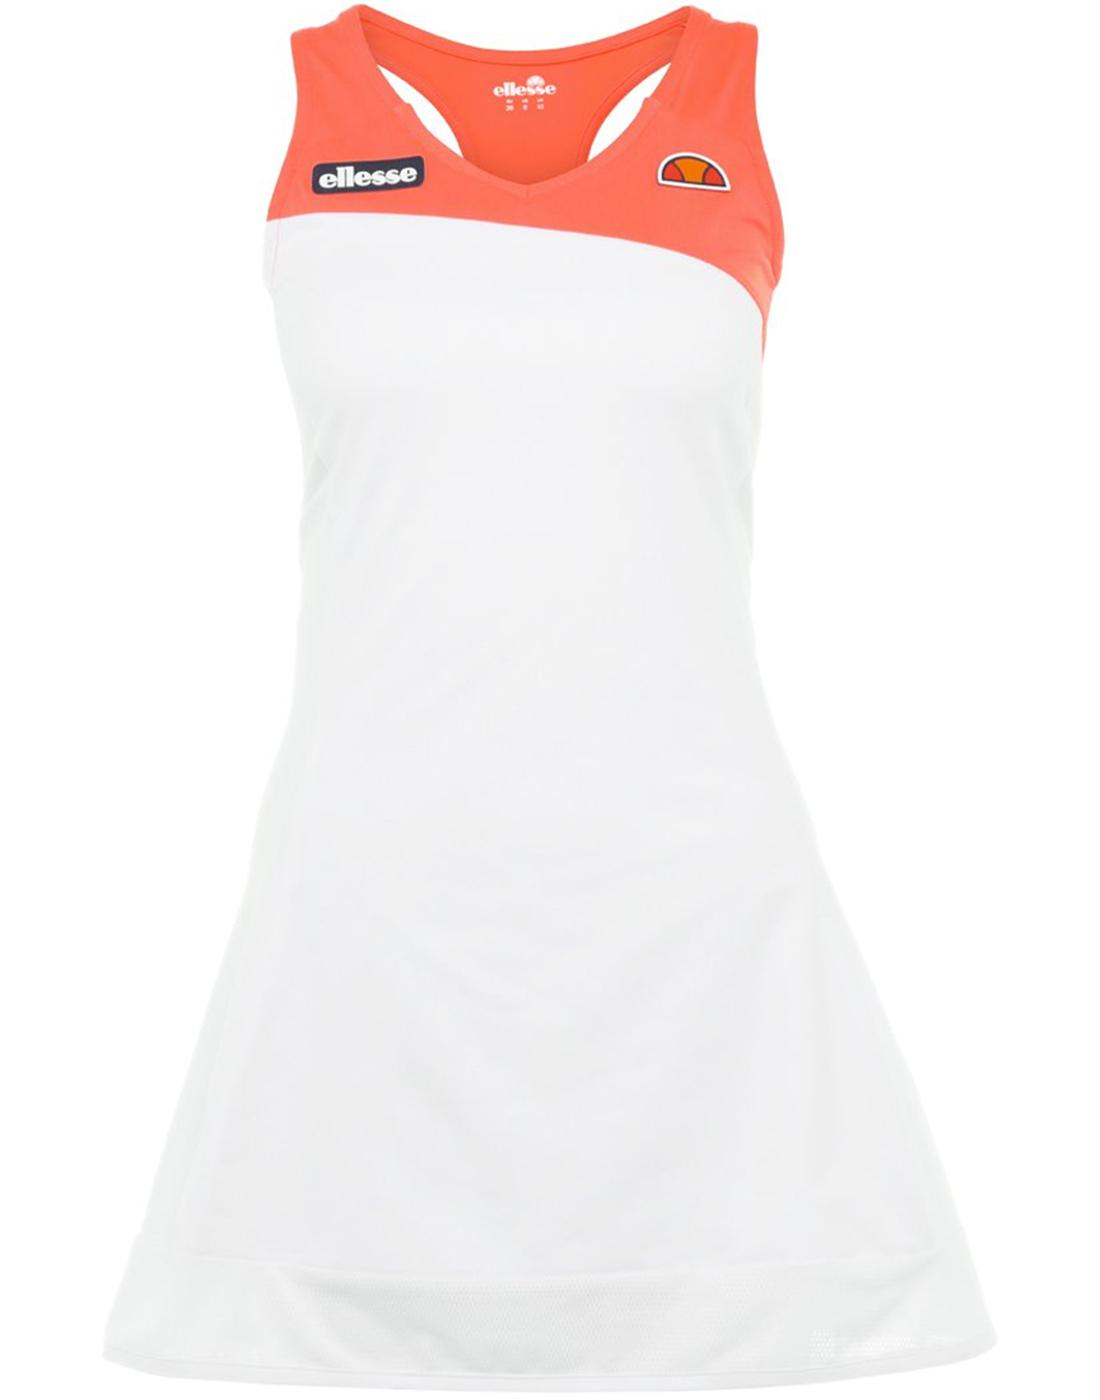 Pearl ELLESSE Retro 70s Mini Tennis Dress in White